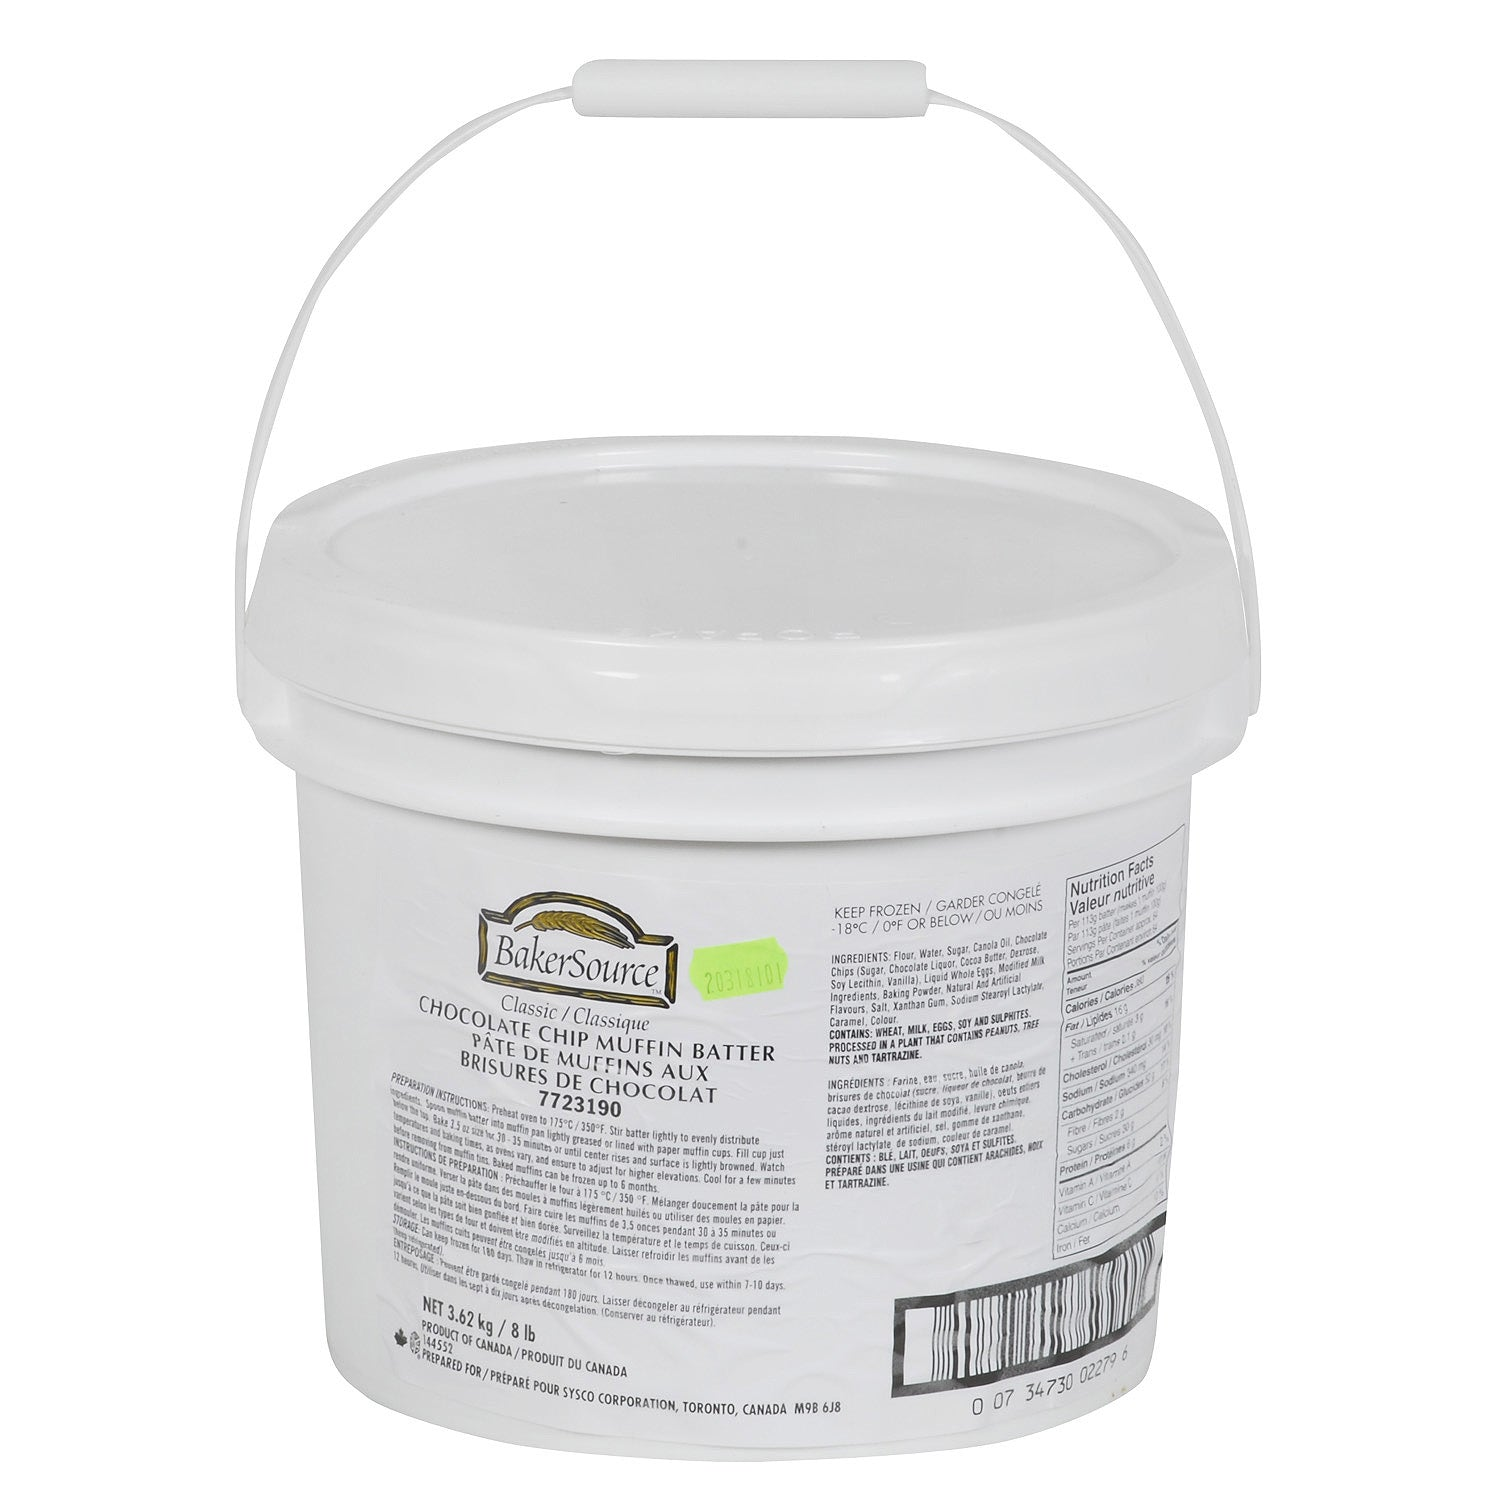 Sysco Bakersource Frozen Chocolate Chip Muffin Batter 3.62 kg - 1 Pack [$16.99/pail]